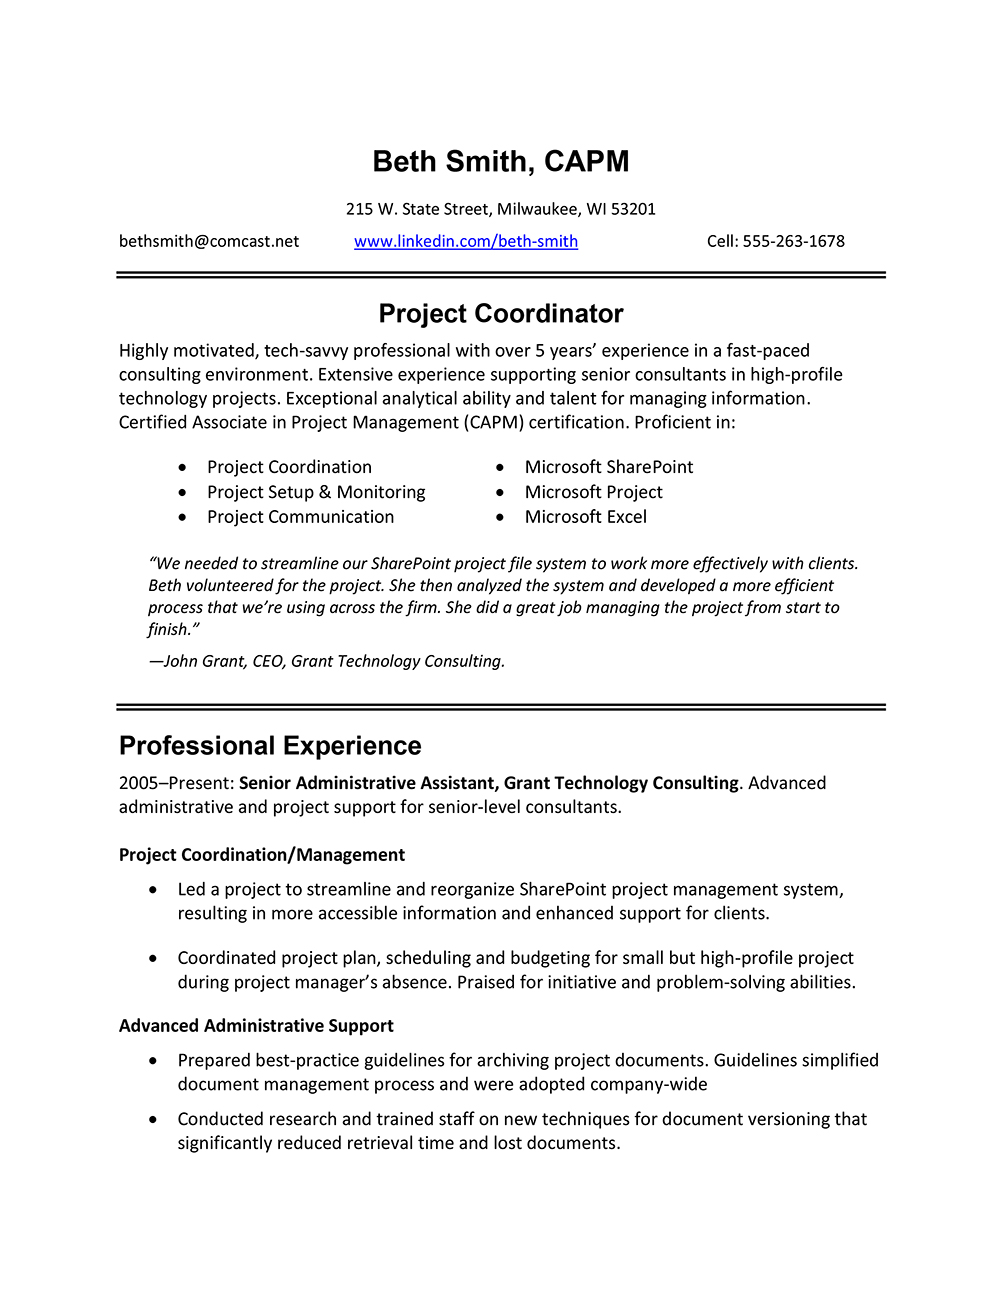 http://apollomapping.com/wp-content/user_uploads/2013/07/Sample_Resume_US_Gov-1.jpg